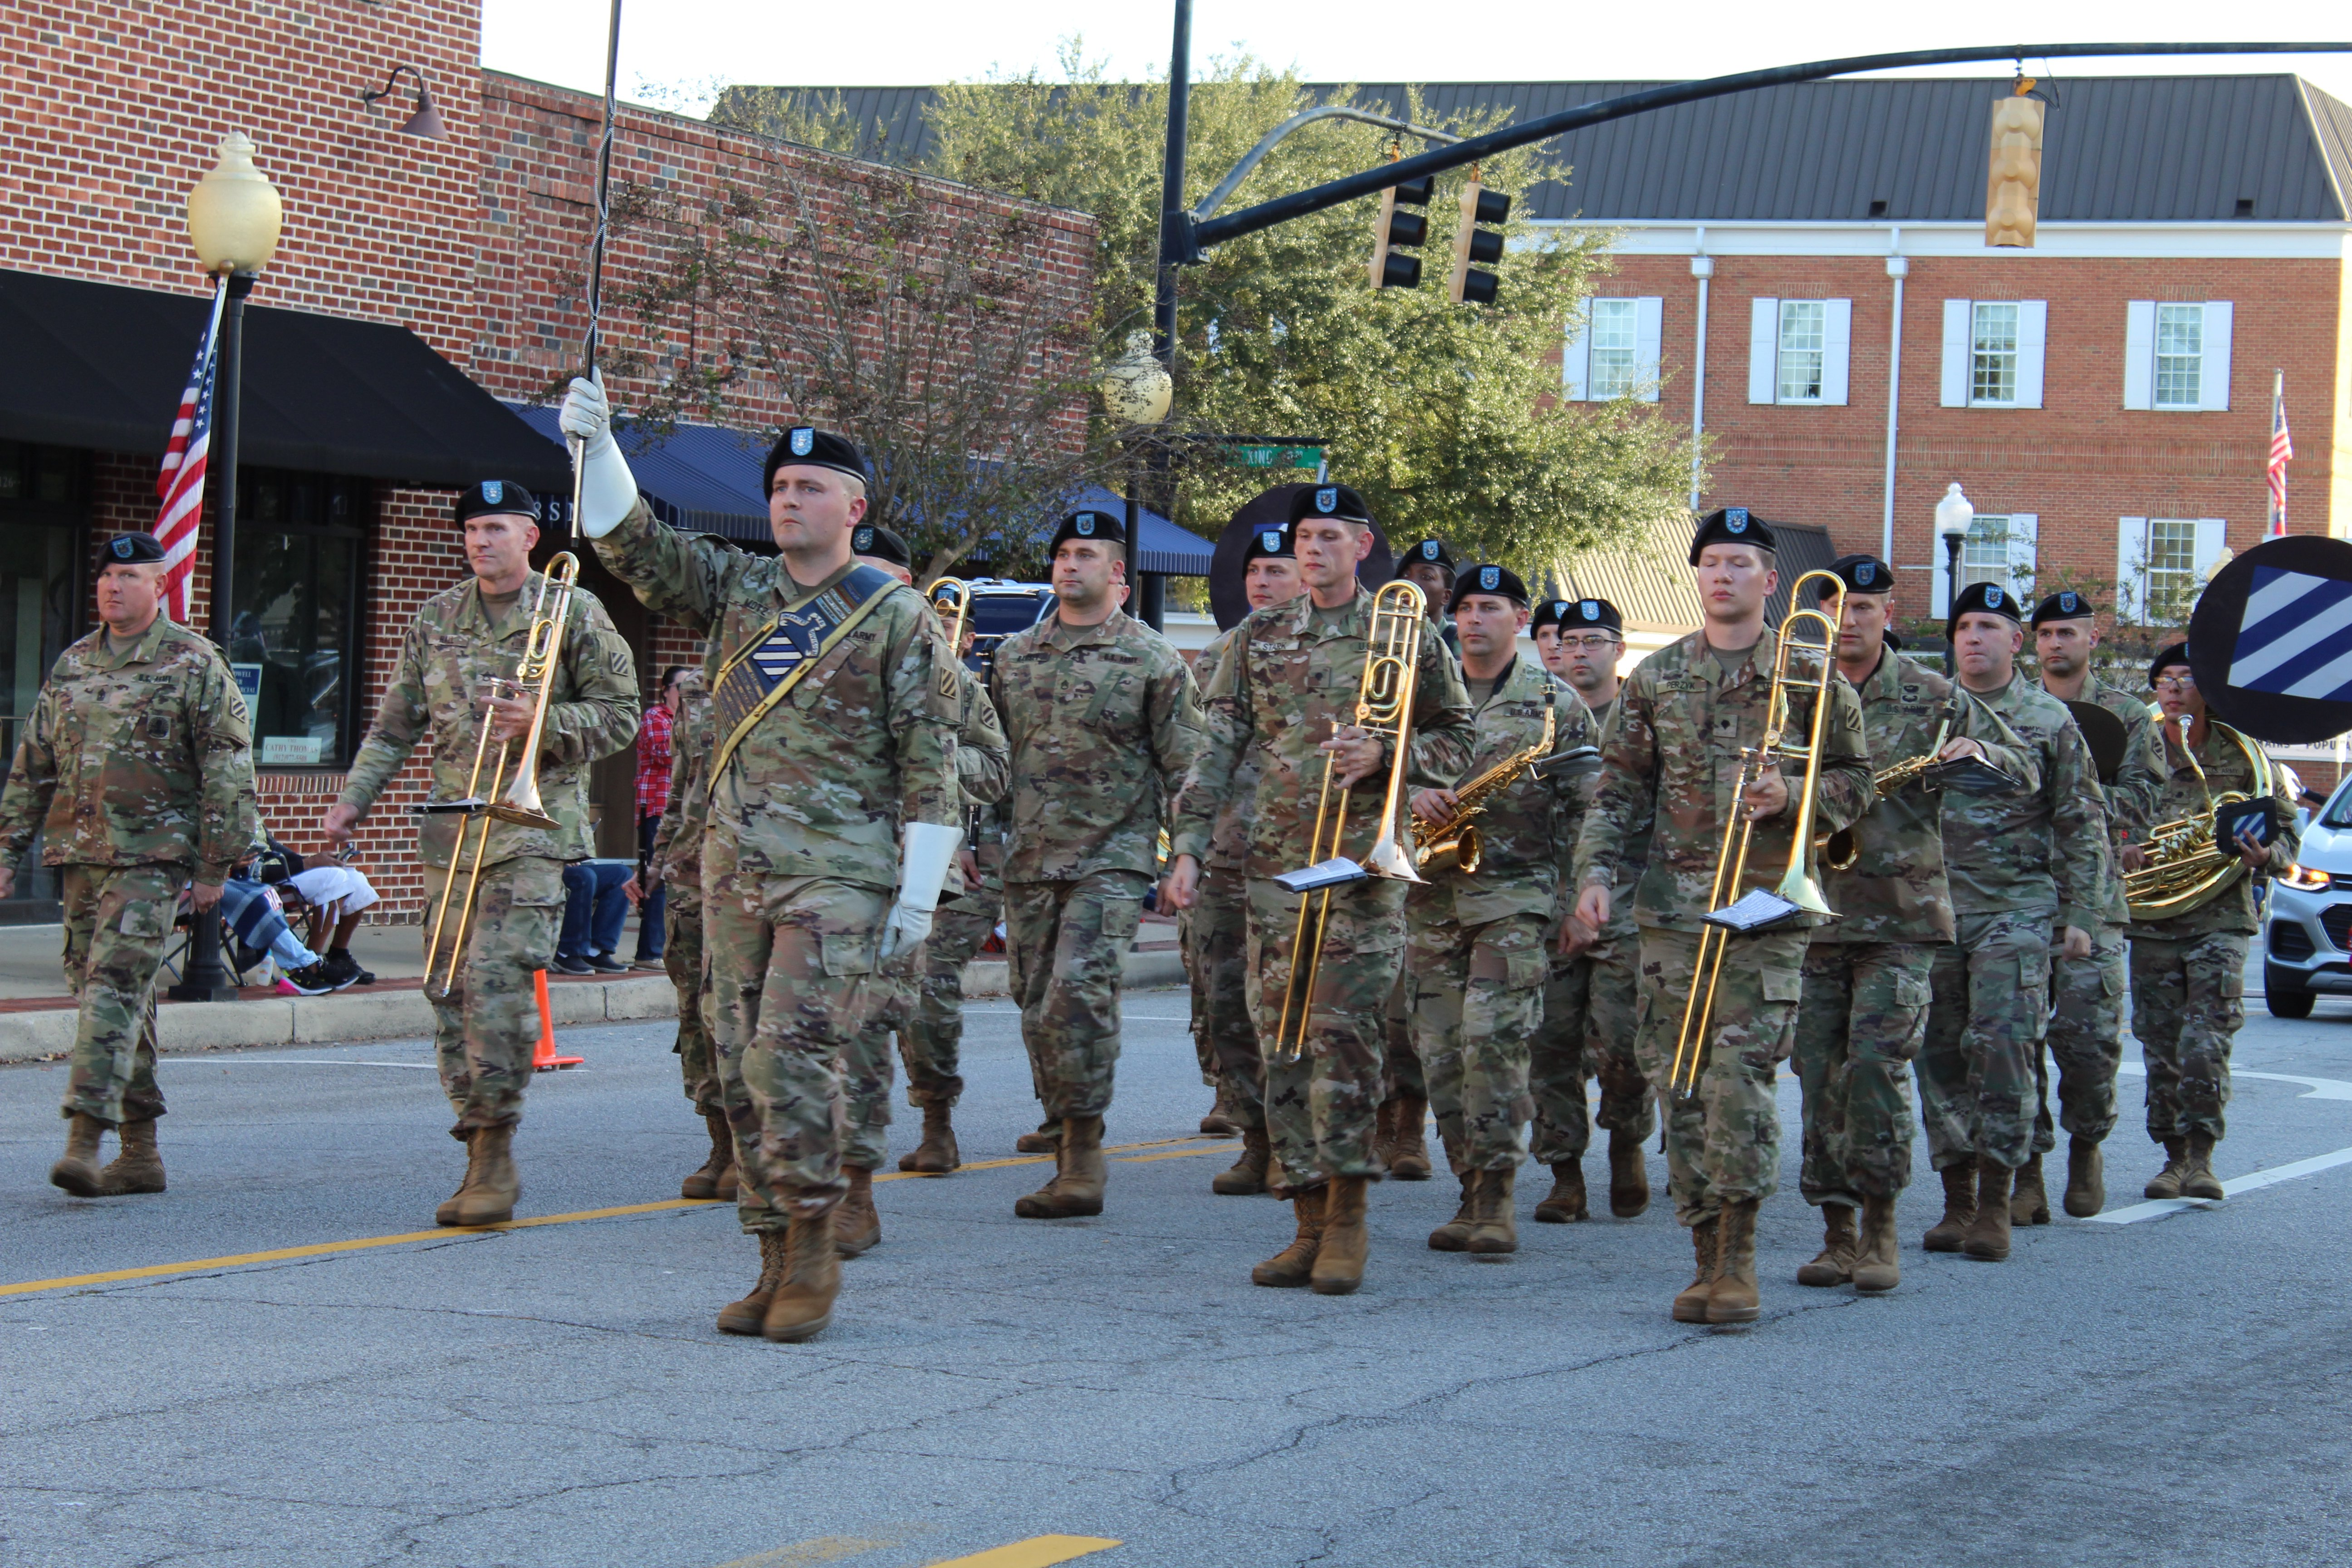 army band